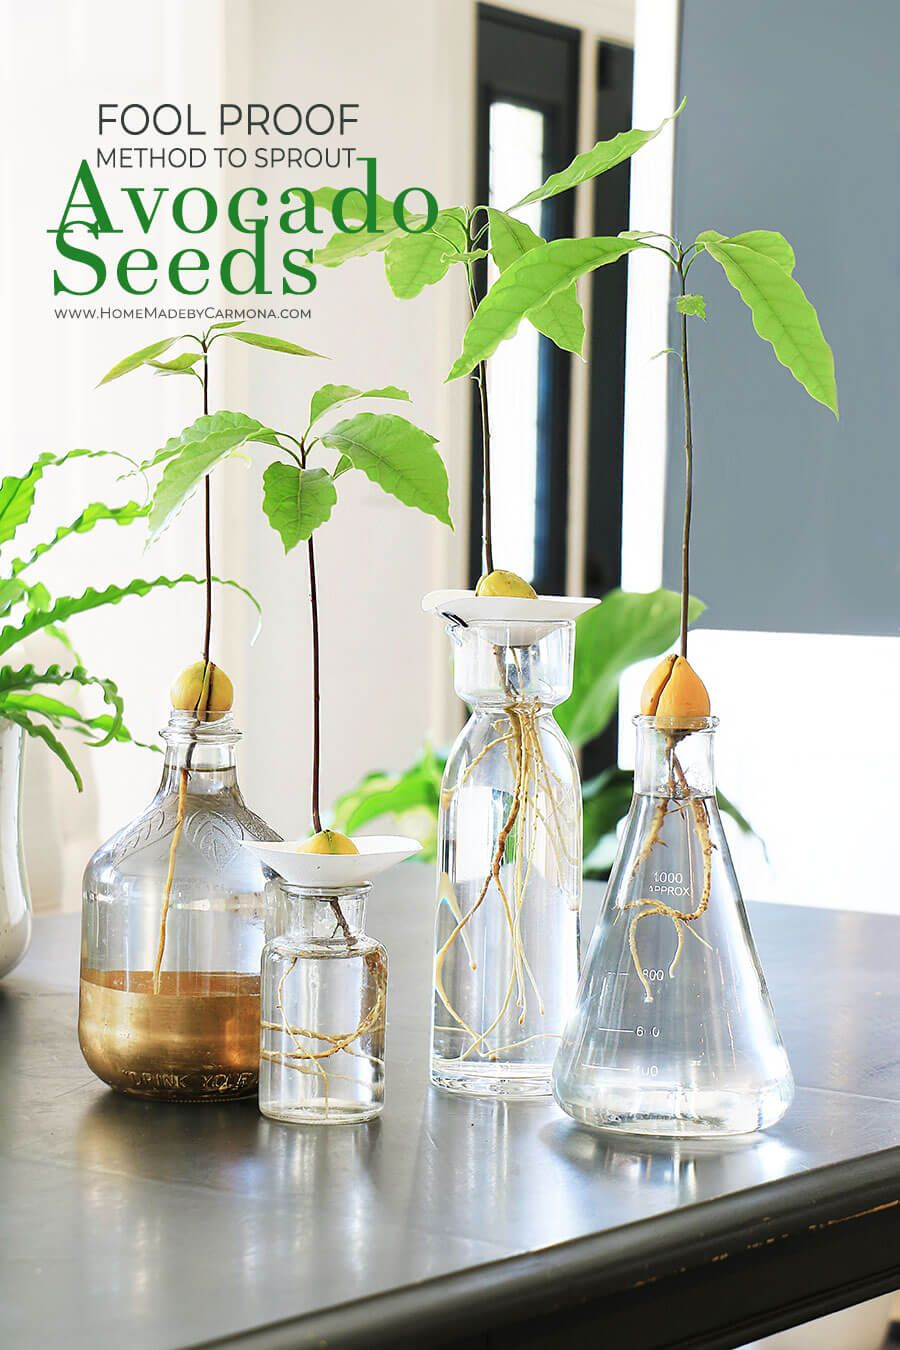 Fool Proof Ways To Grow An Avocado Plant From Seed is part of Avocado plant, Avocado plant from seed, Grow avocado, Growing an avocado tree, Avocado seed, Avocado seed growing - Learn a fool proof method to grow an avocado plant from seed! Why did your toothpick method fail  Here are a few avocado seed growing tips you'll need!